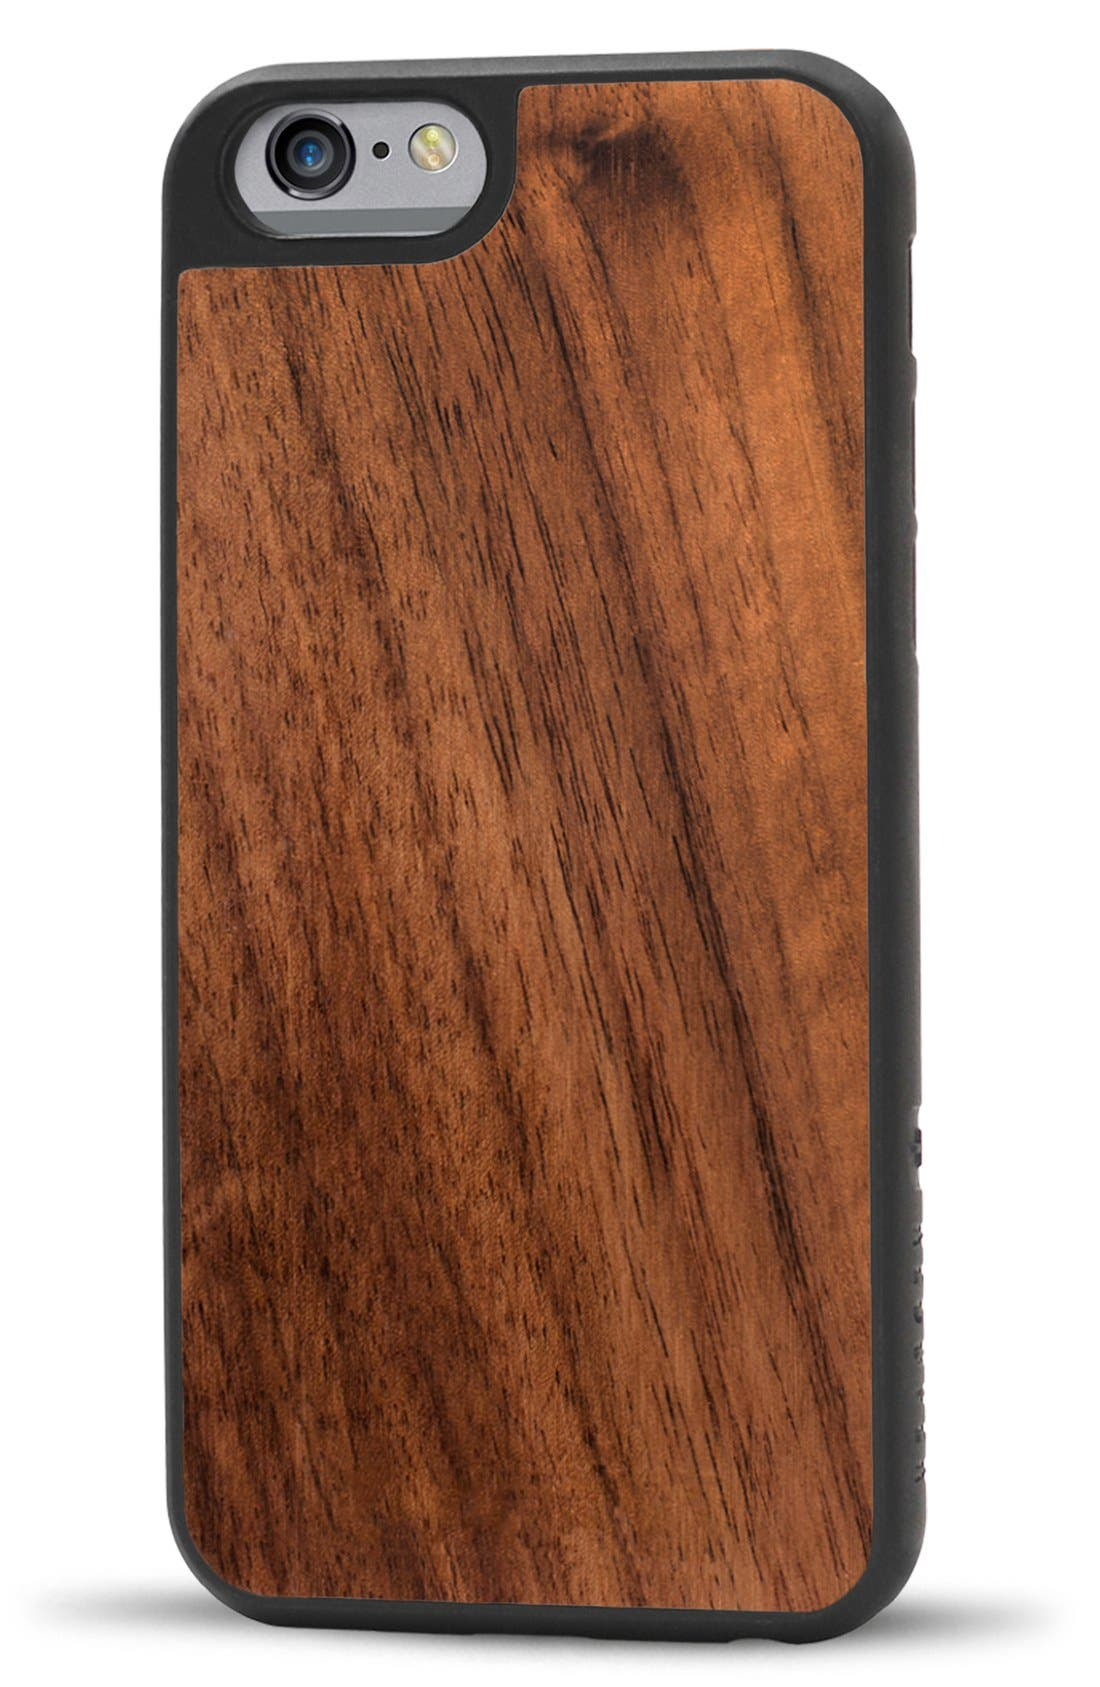 Main Image - Recover Walnut Wood iPhone 6/6s Case